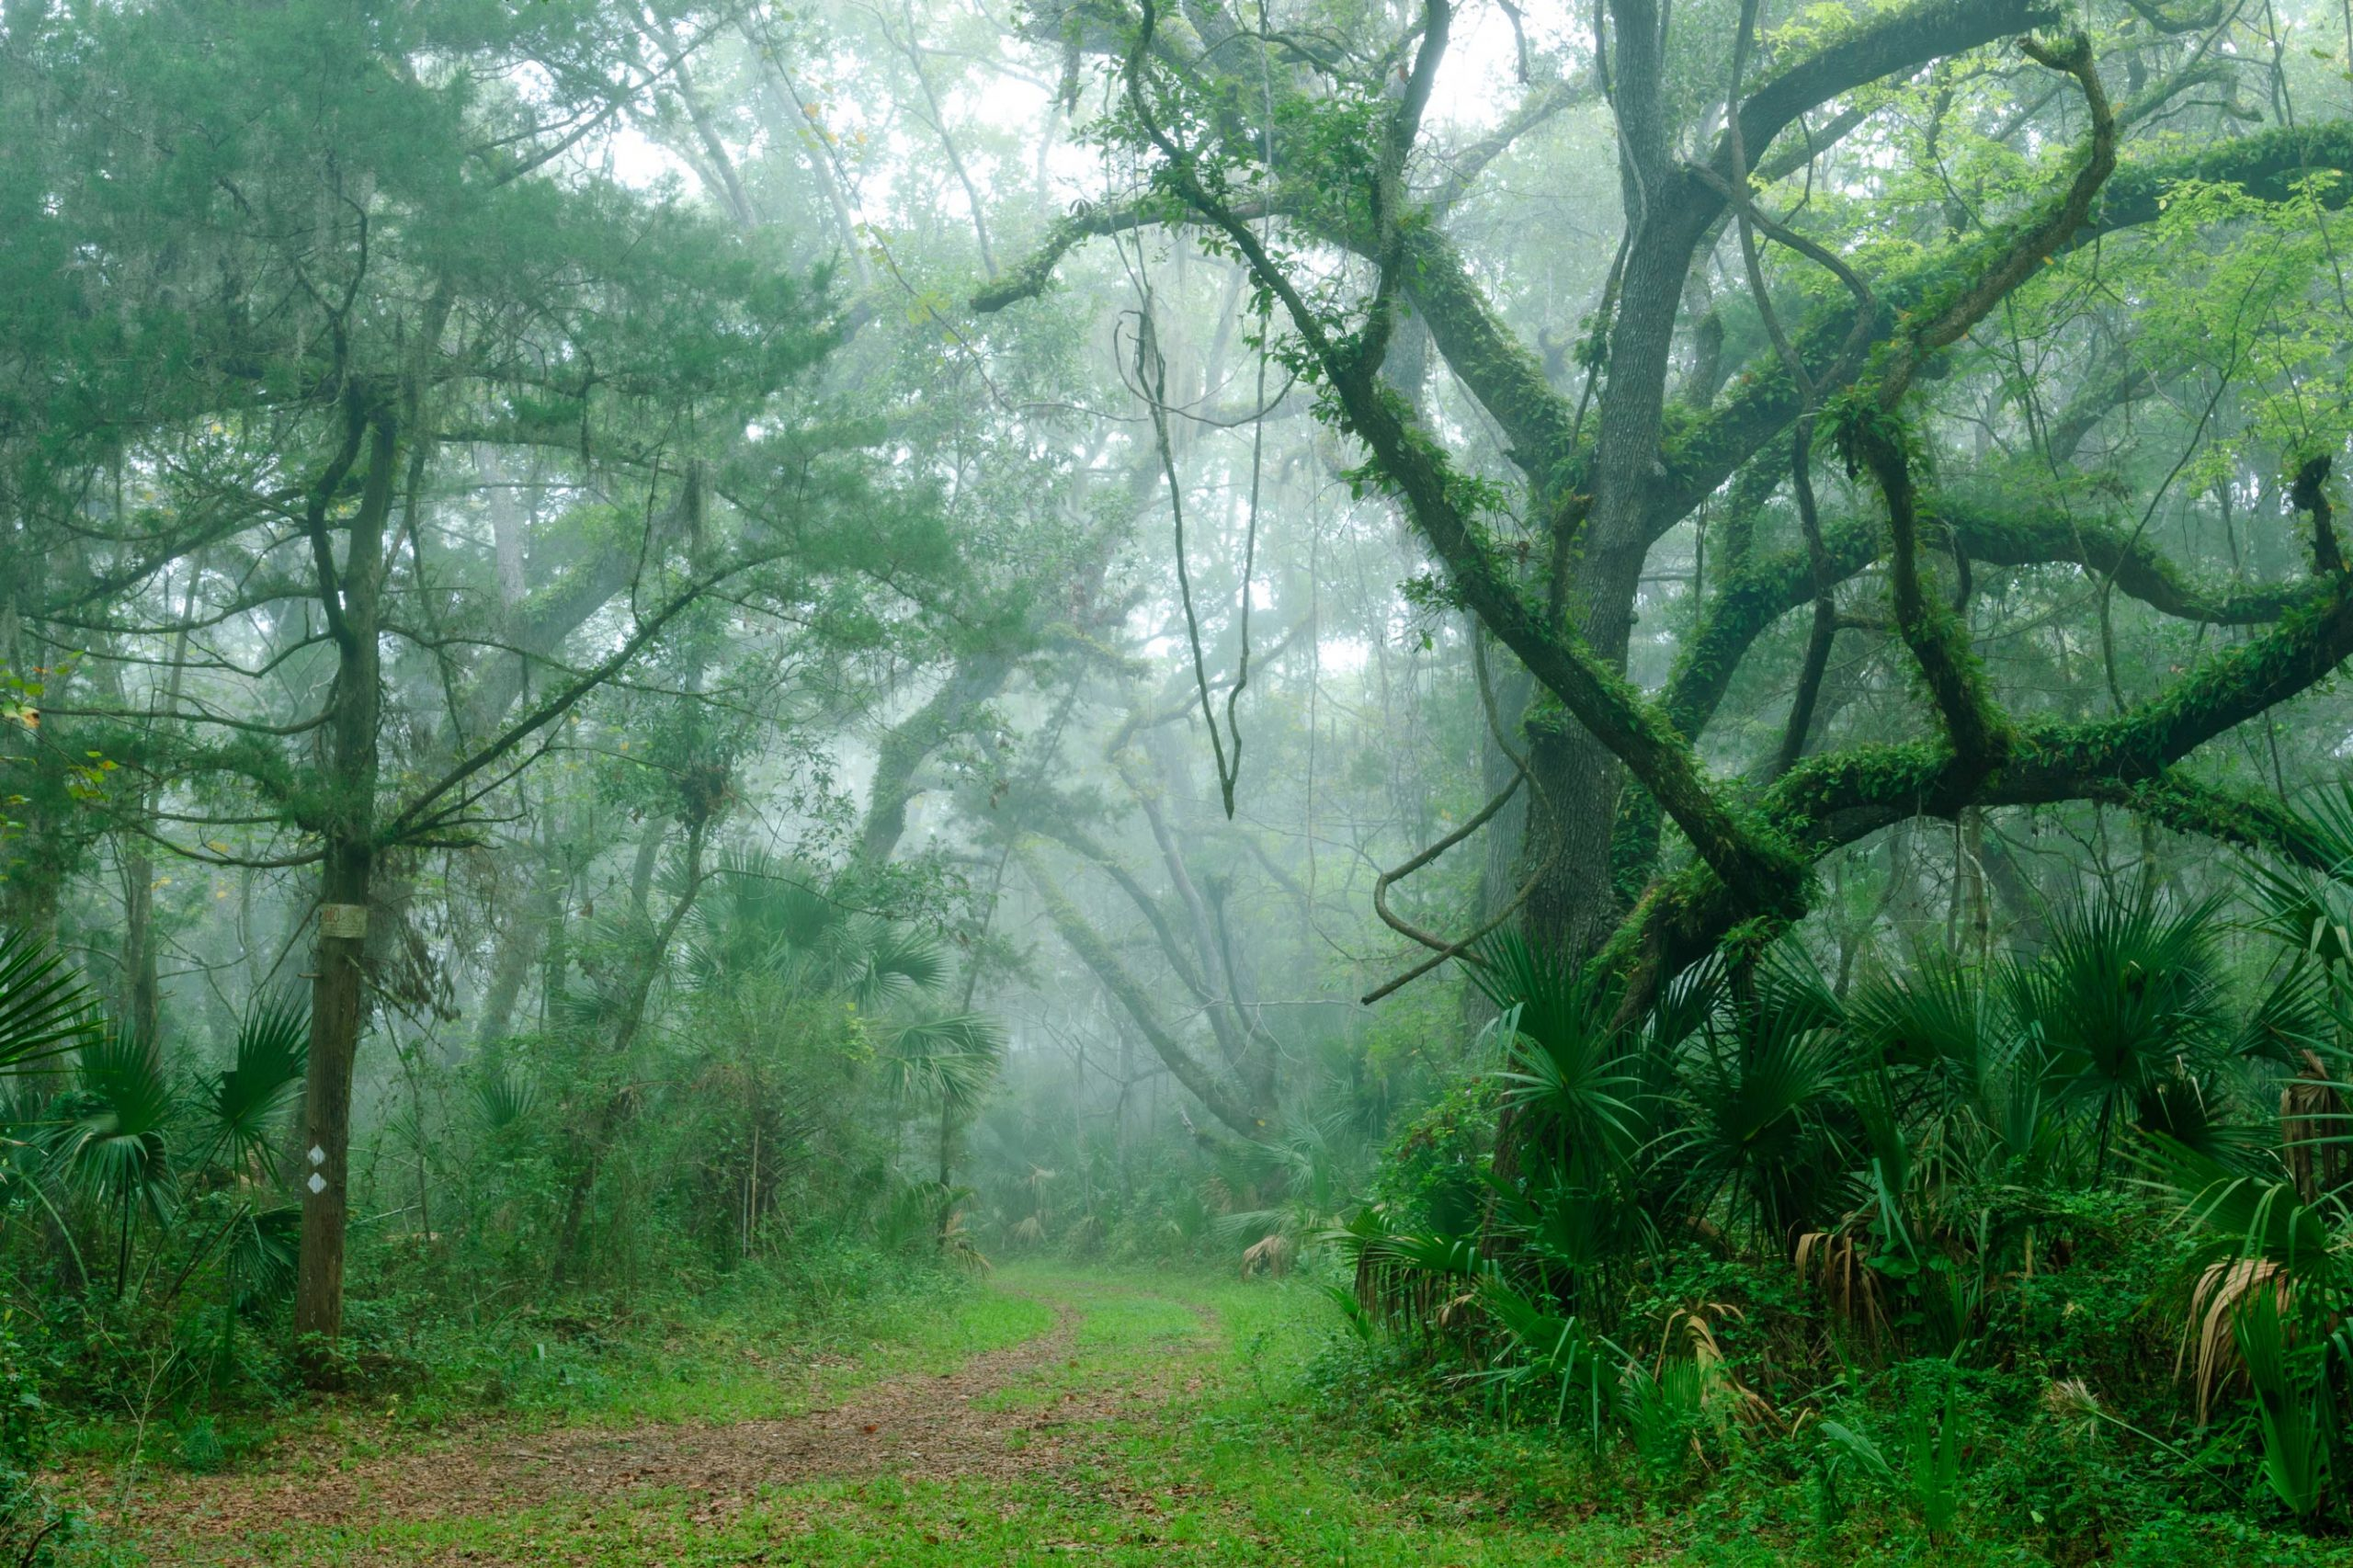 Mists in a flush forest path